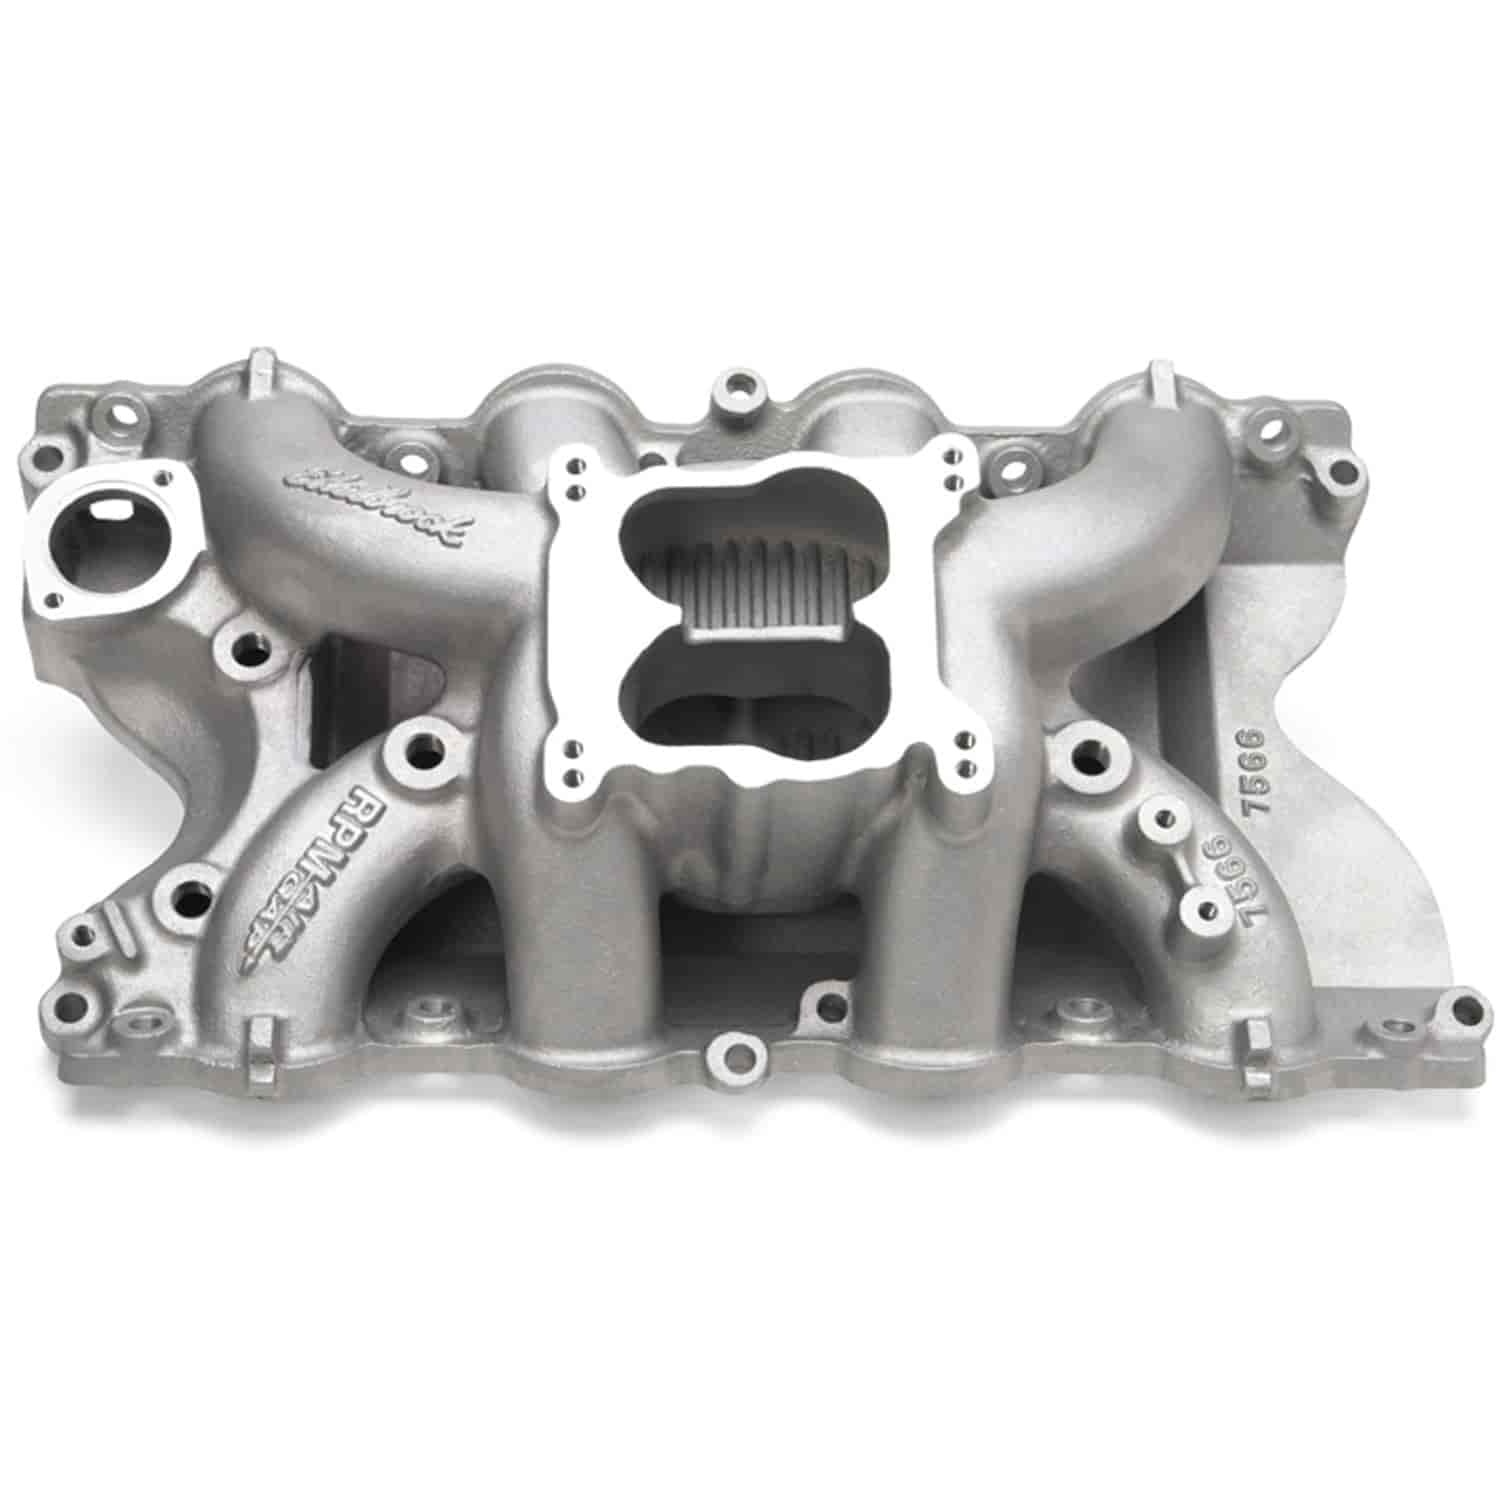 Edelbrock 7566 Rpm Air Gap 460 Ford Intake Manifold Jegs Timing A Engine